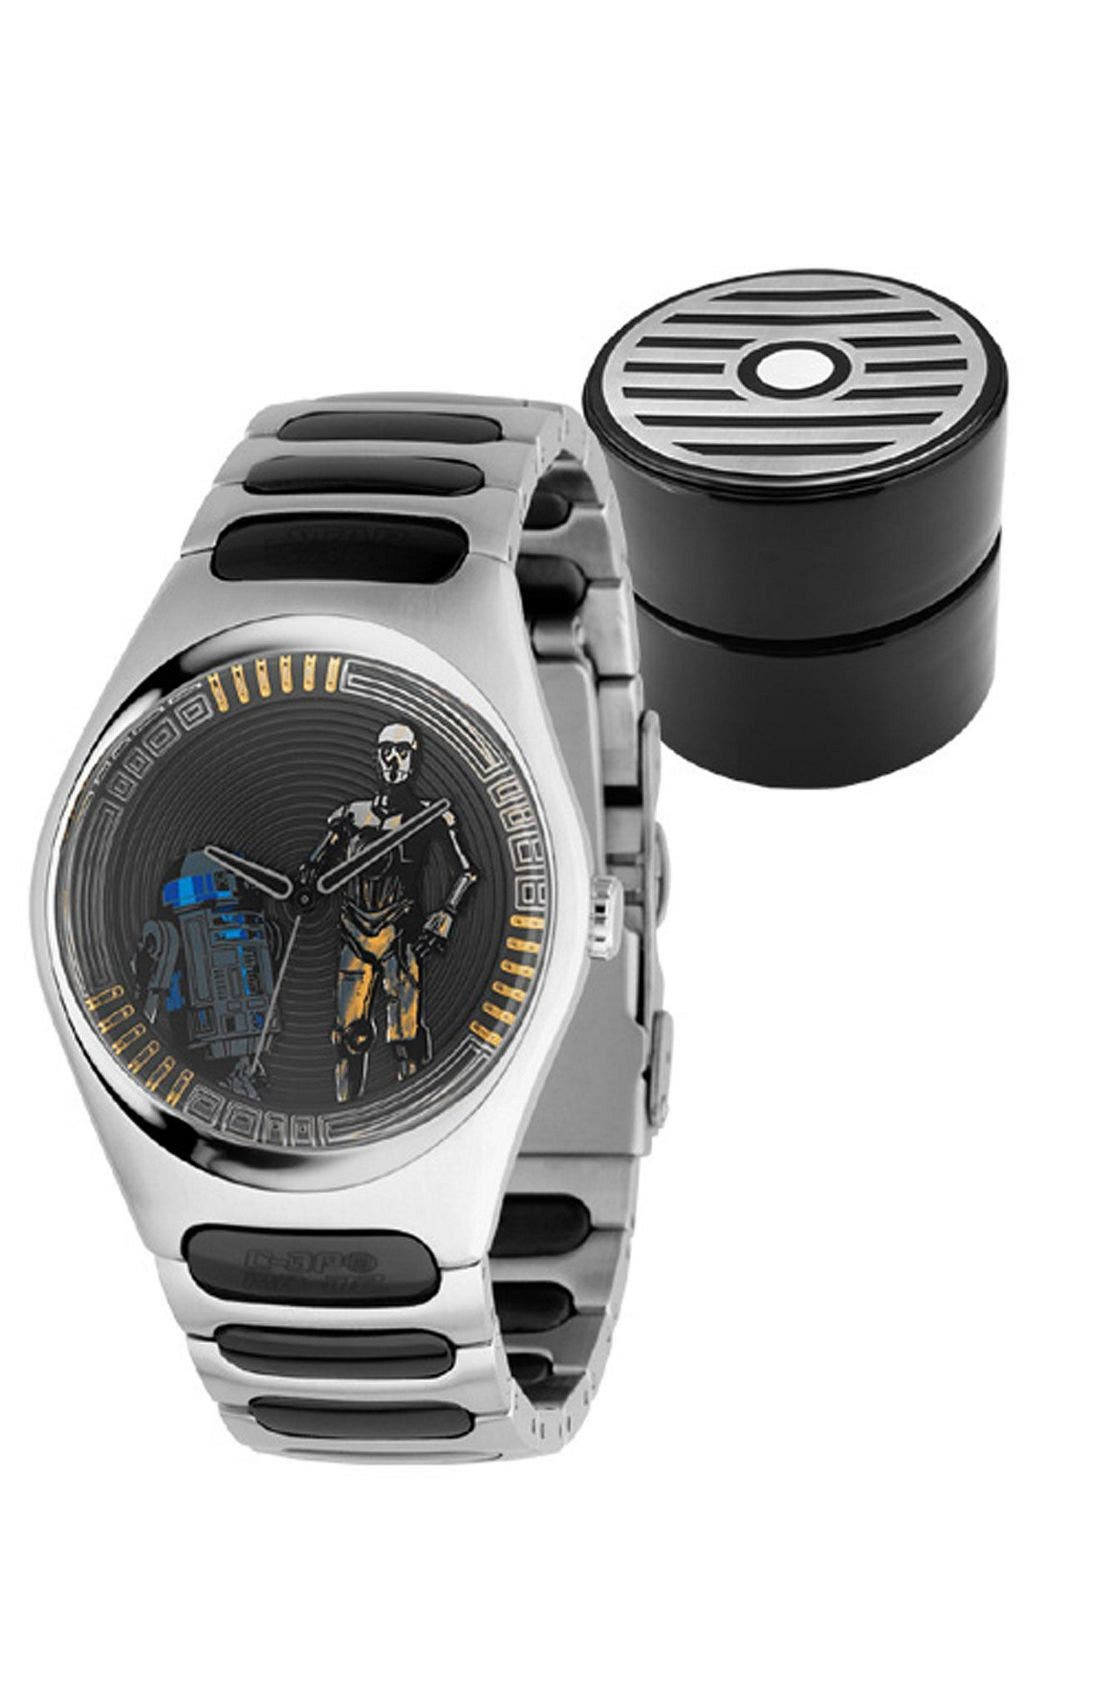 Star Wars<sup>™</sup> Limited Edition 'Droids' Watch,                             Main thumbnail 1, color,                             BLK